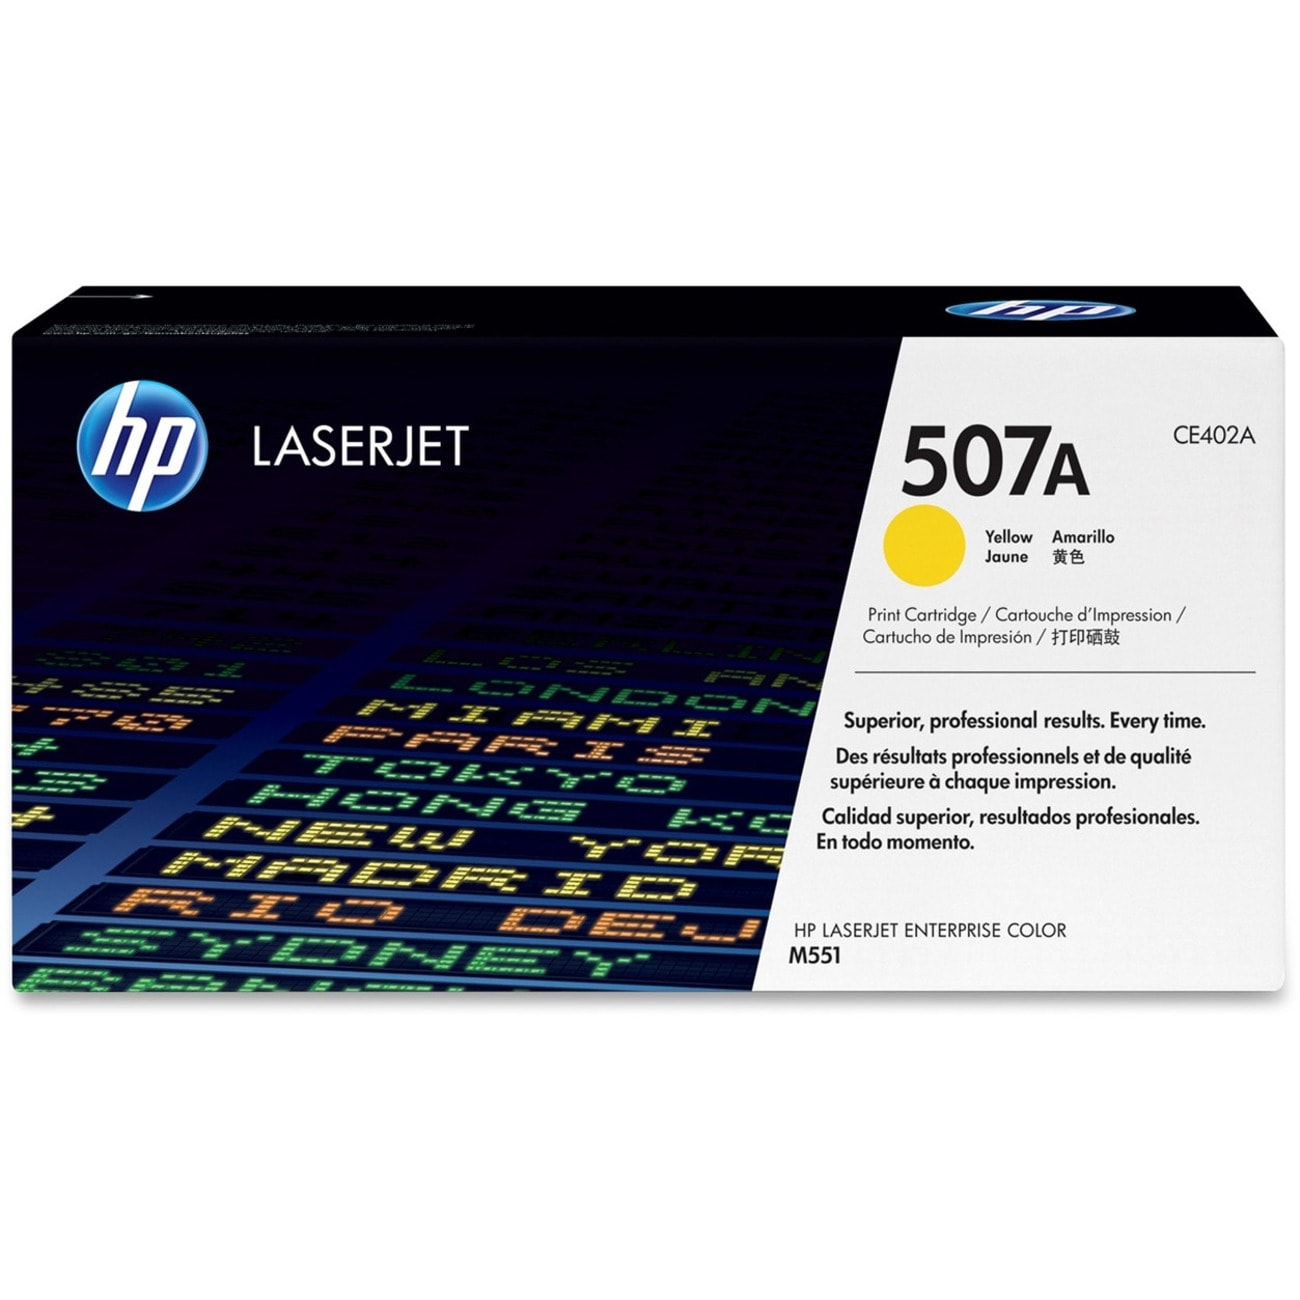 HP 507A Toner Cartridge - Yellow